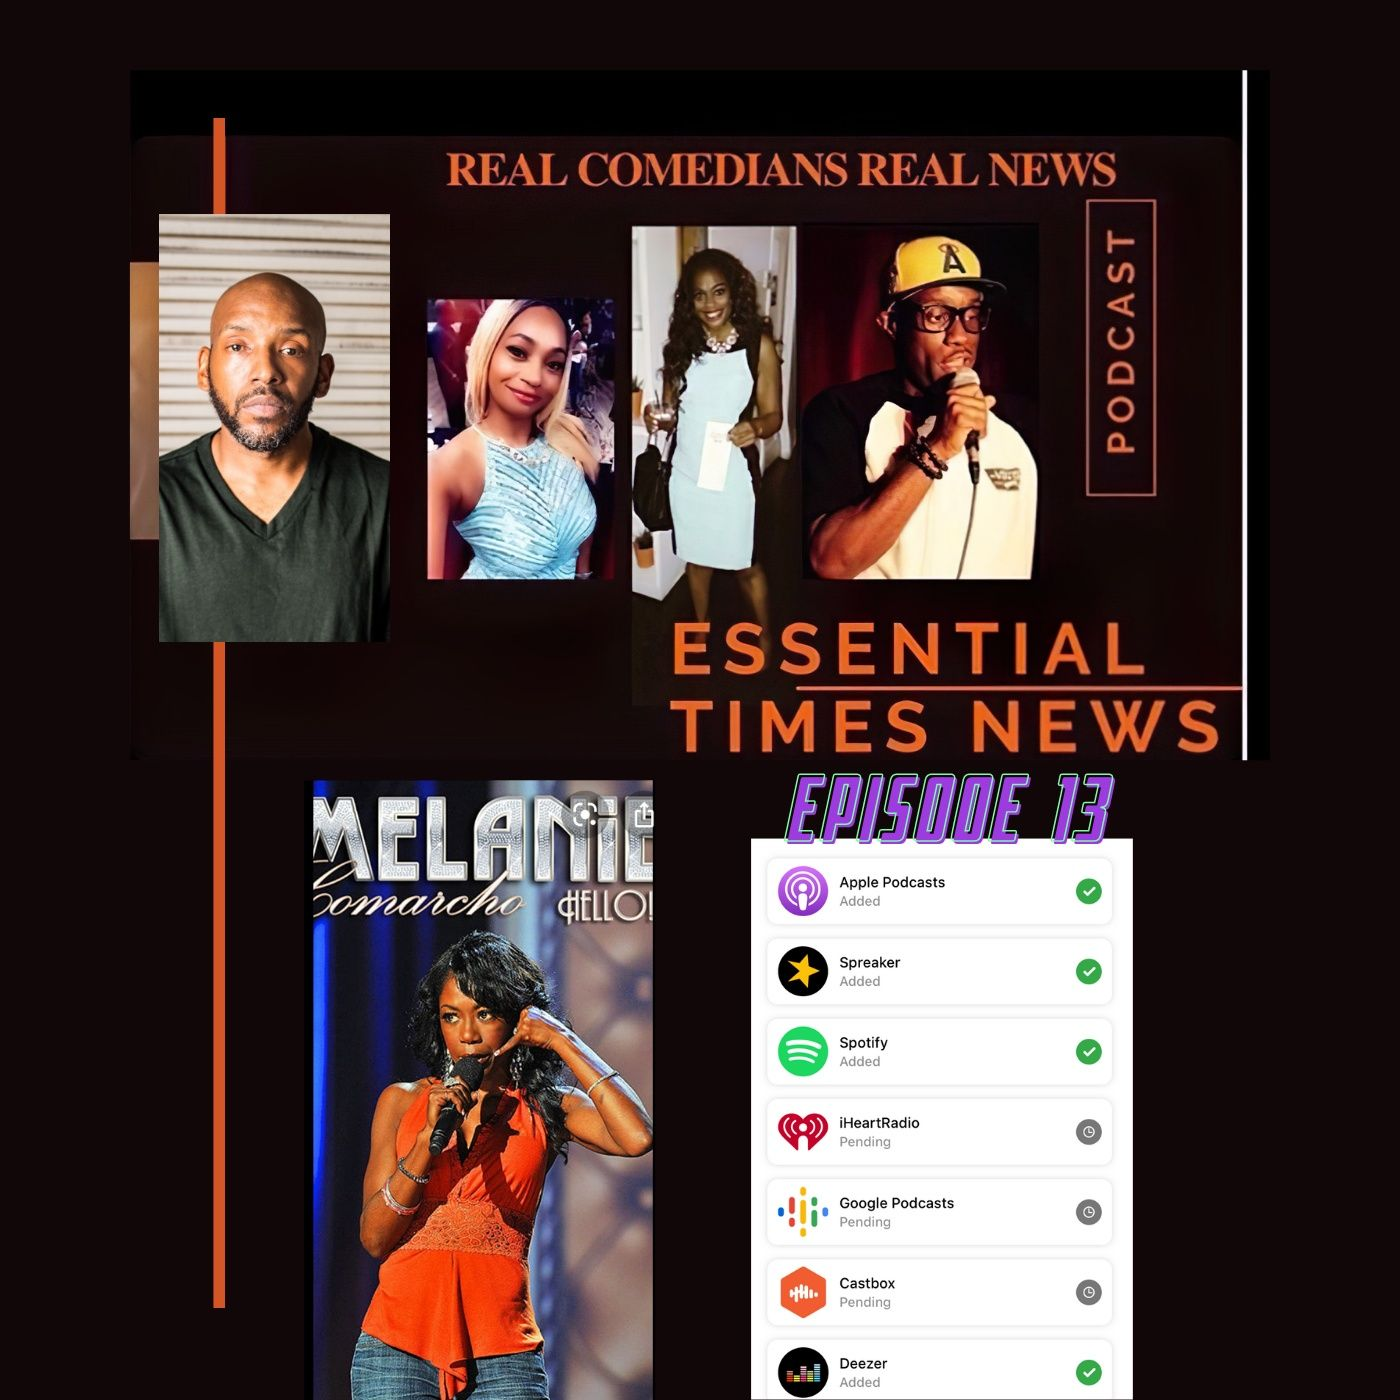 episode 13 Melanie Comarcho - Real Comedians Real News